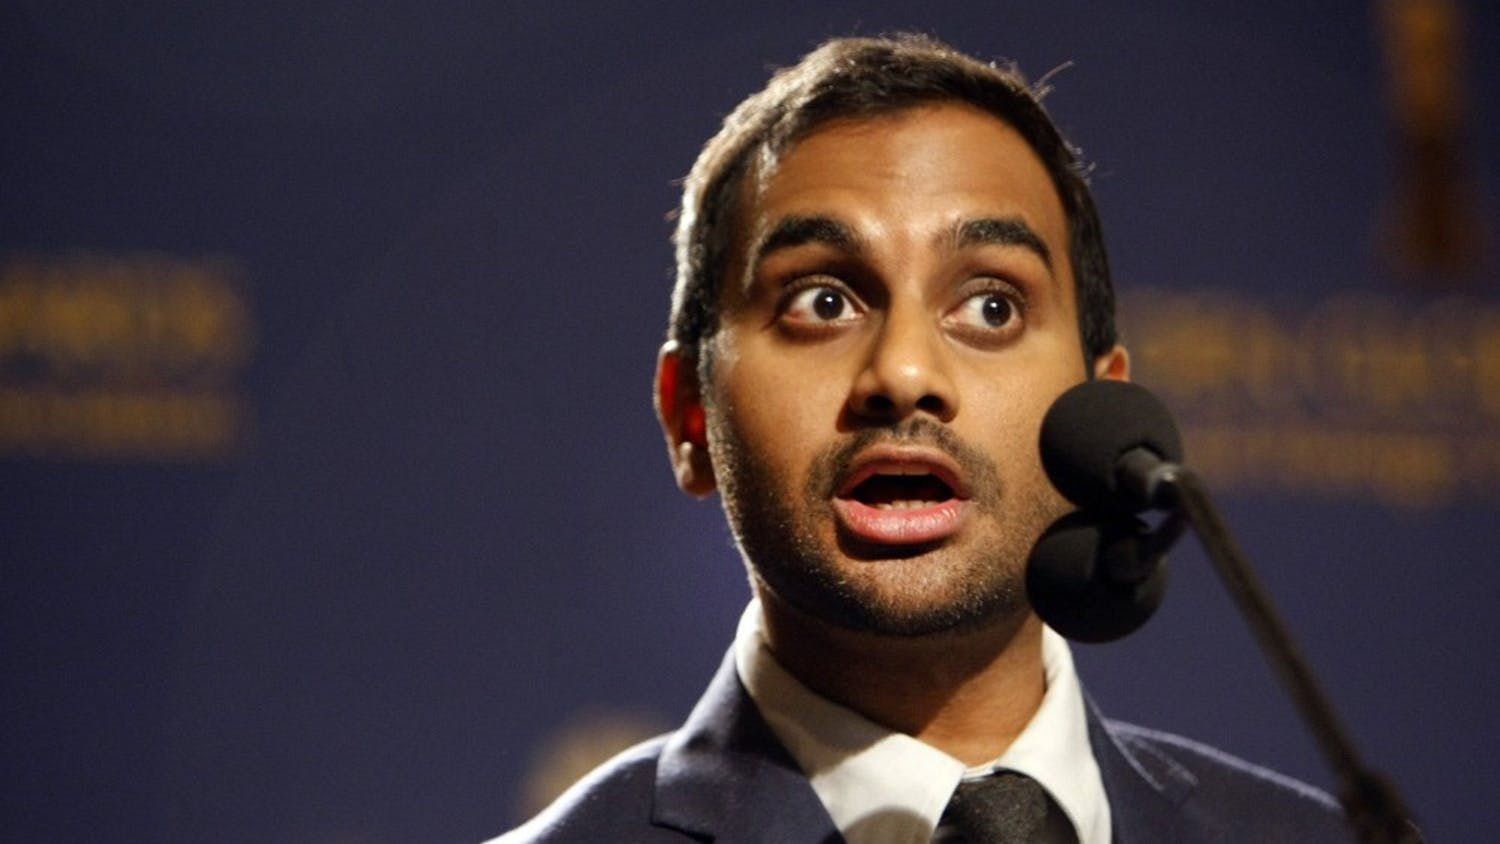 Aziz Ansari announces nominations for the Golden Globe Awards on Dec. 12, 2013, in Los Angeles. (Al Seib/Los Angeles Times/MCT)